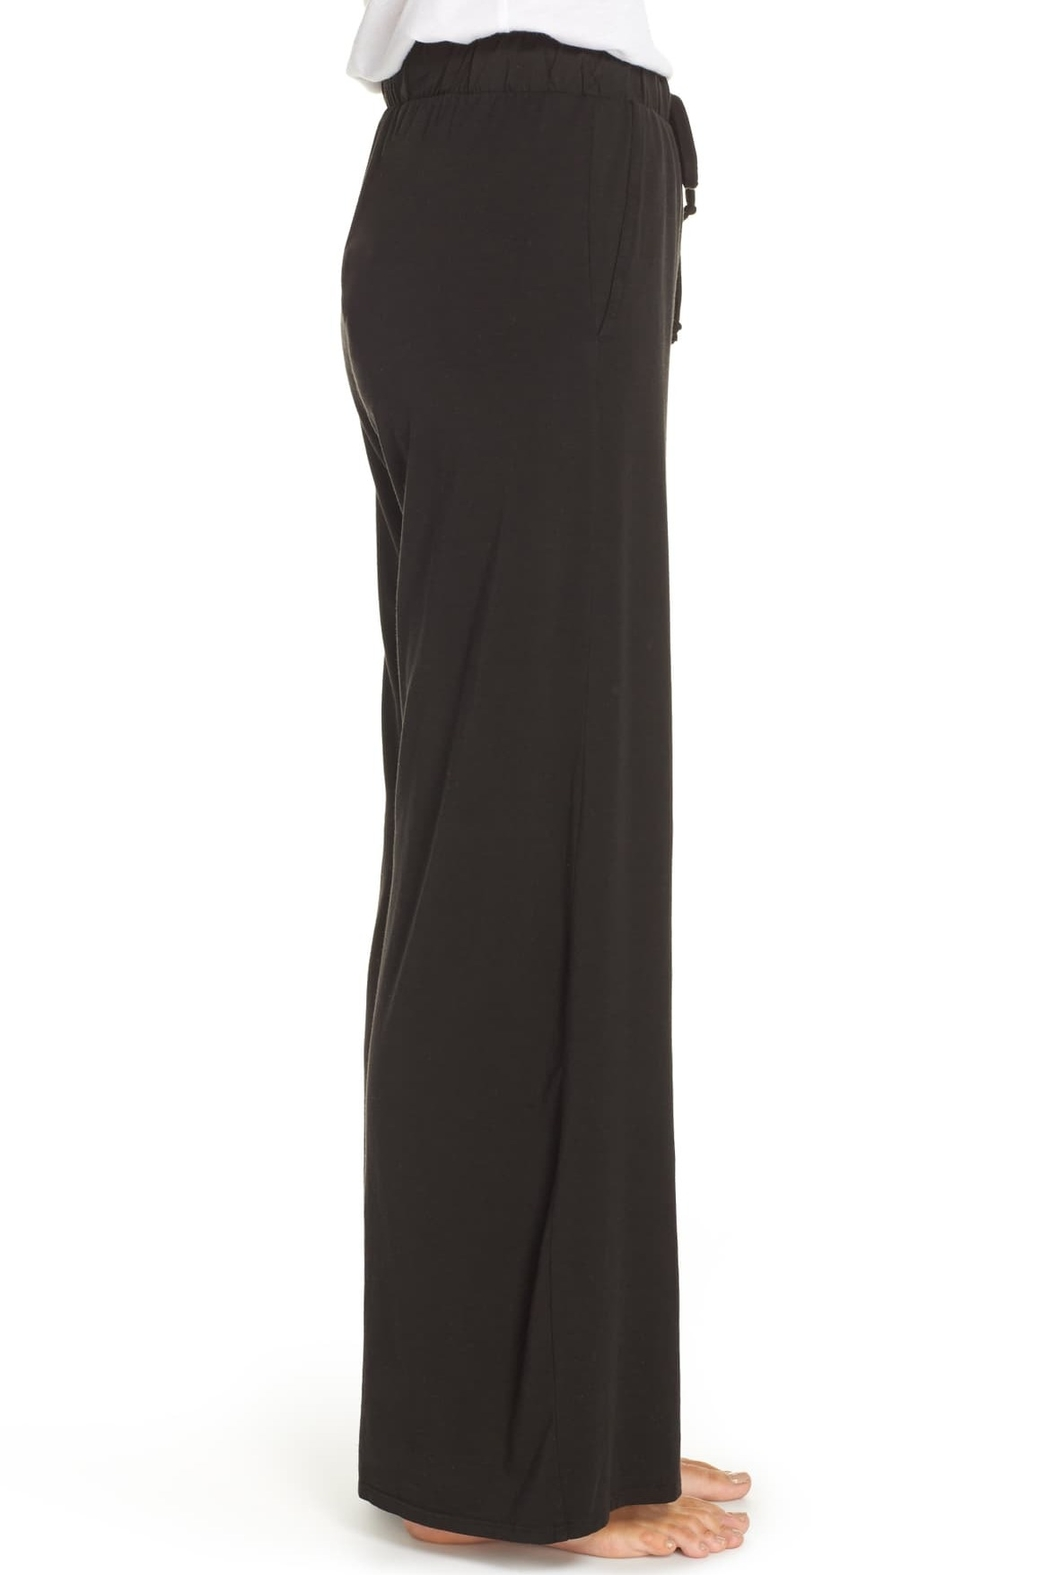 Groceries Apparel Winslet Pajama Pant - Side Cropped Image